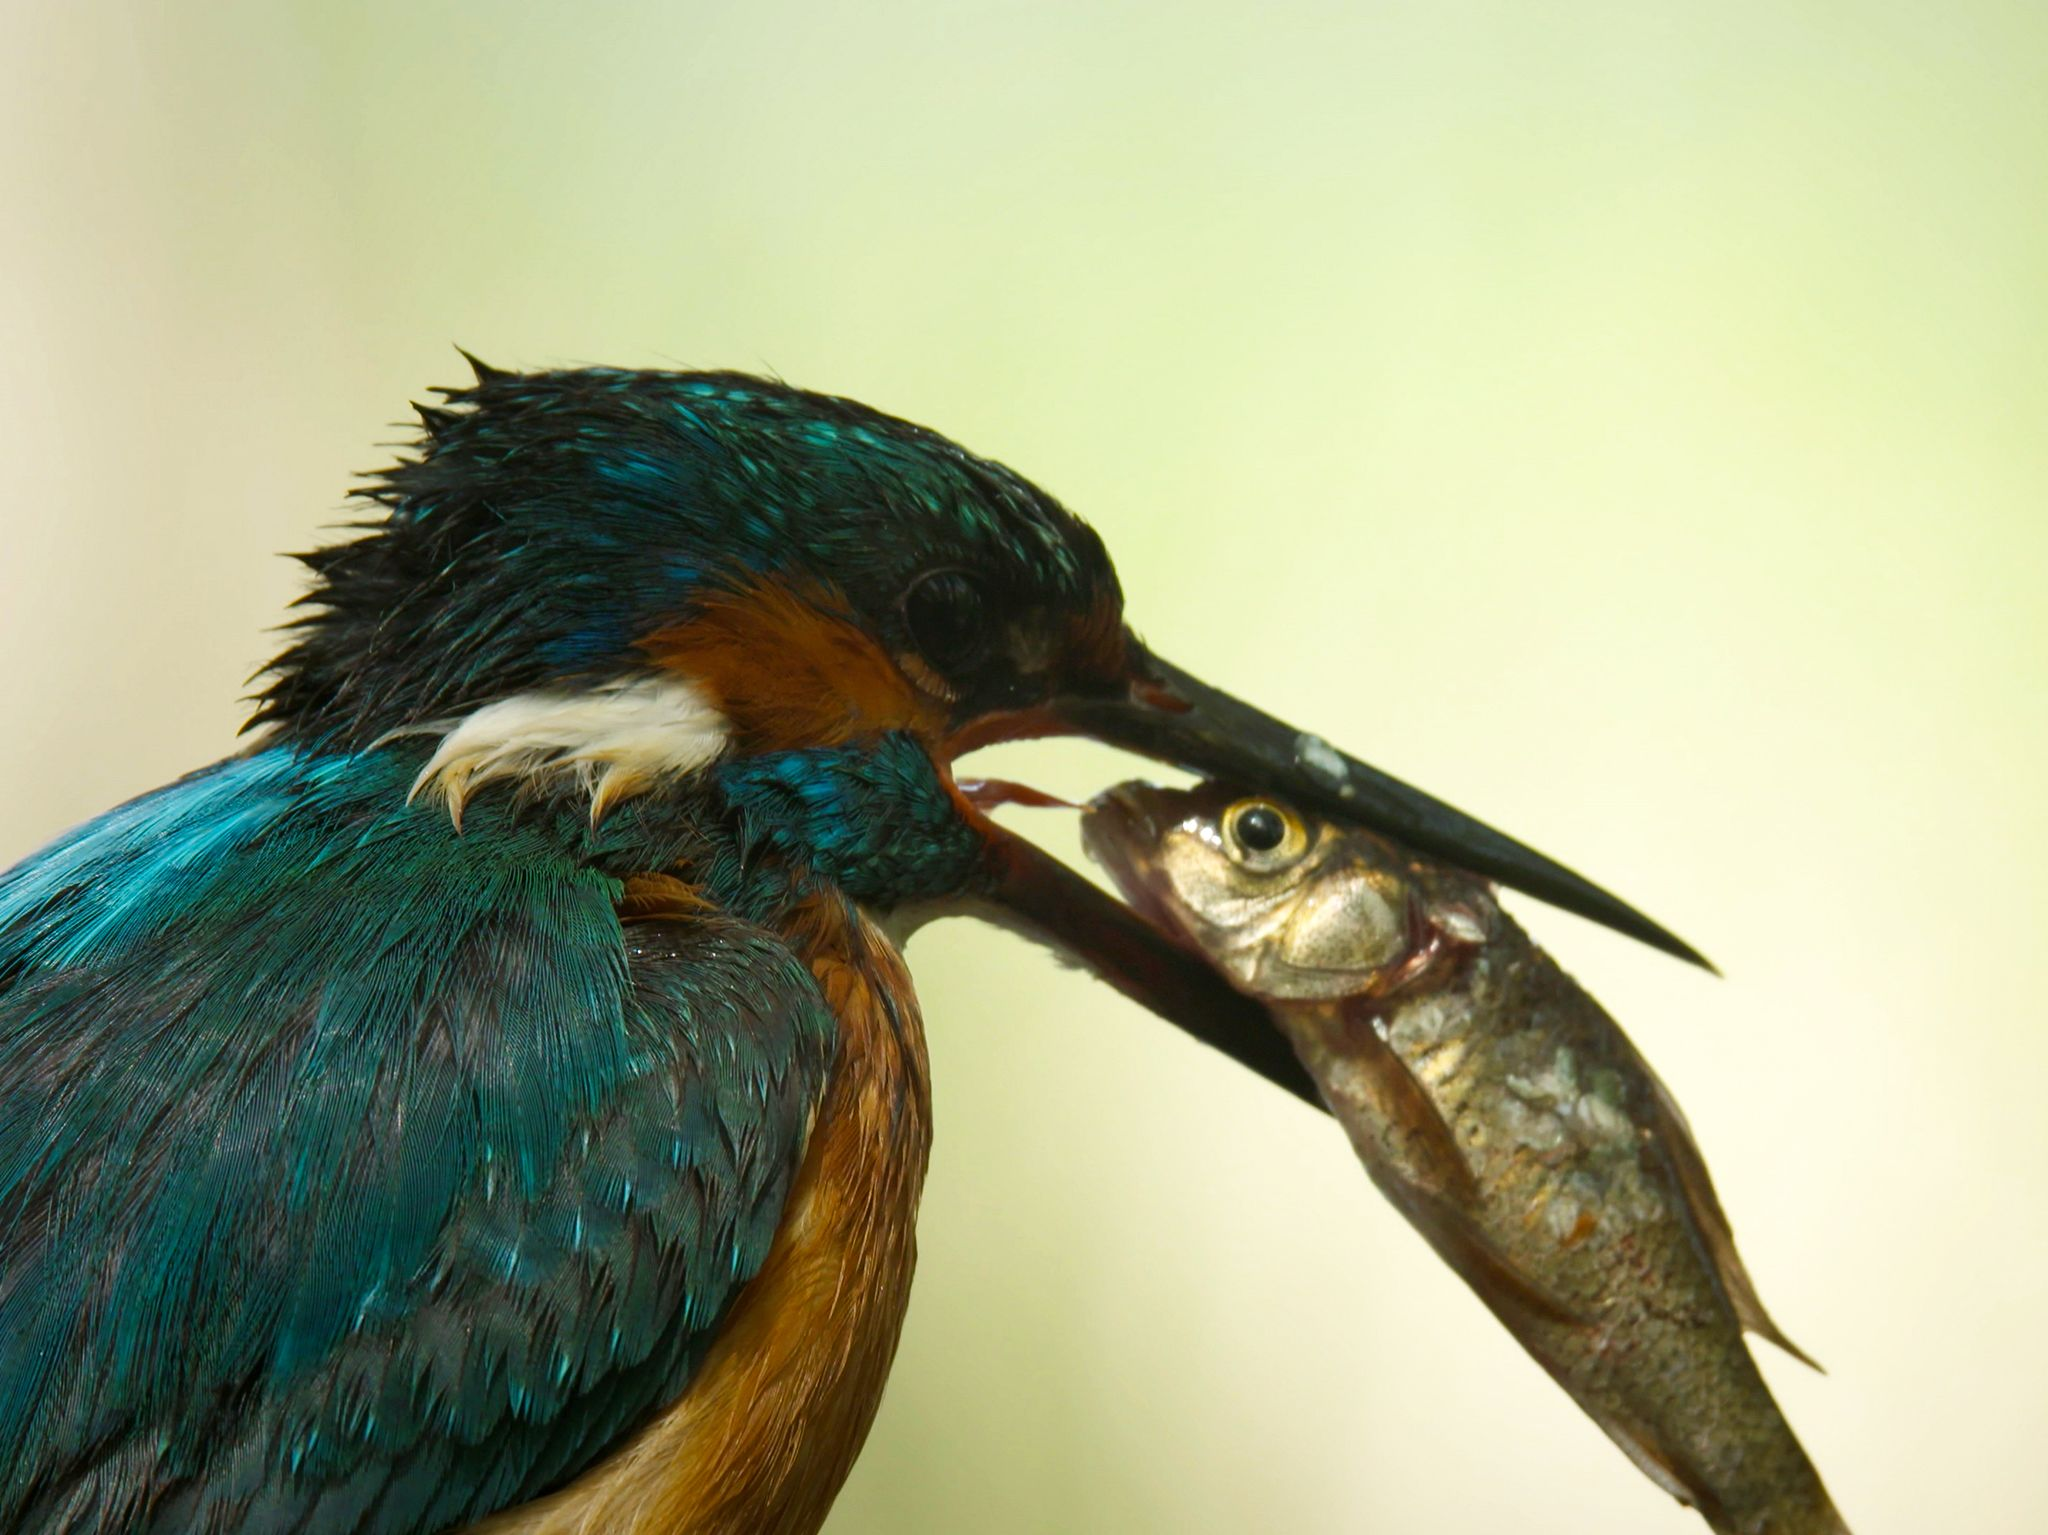 A close up of a Kingfisher after having caught its prey (a trout) with its beak. This image is... [Photo of the day - May 2020]